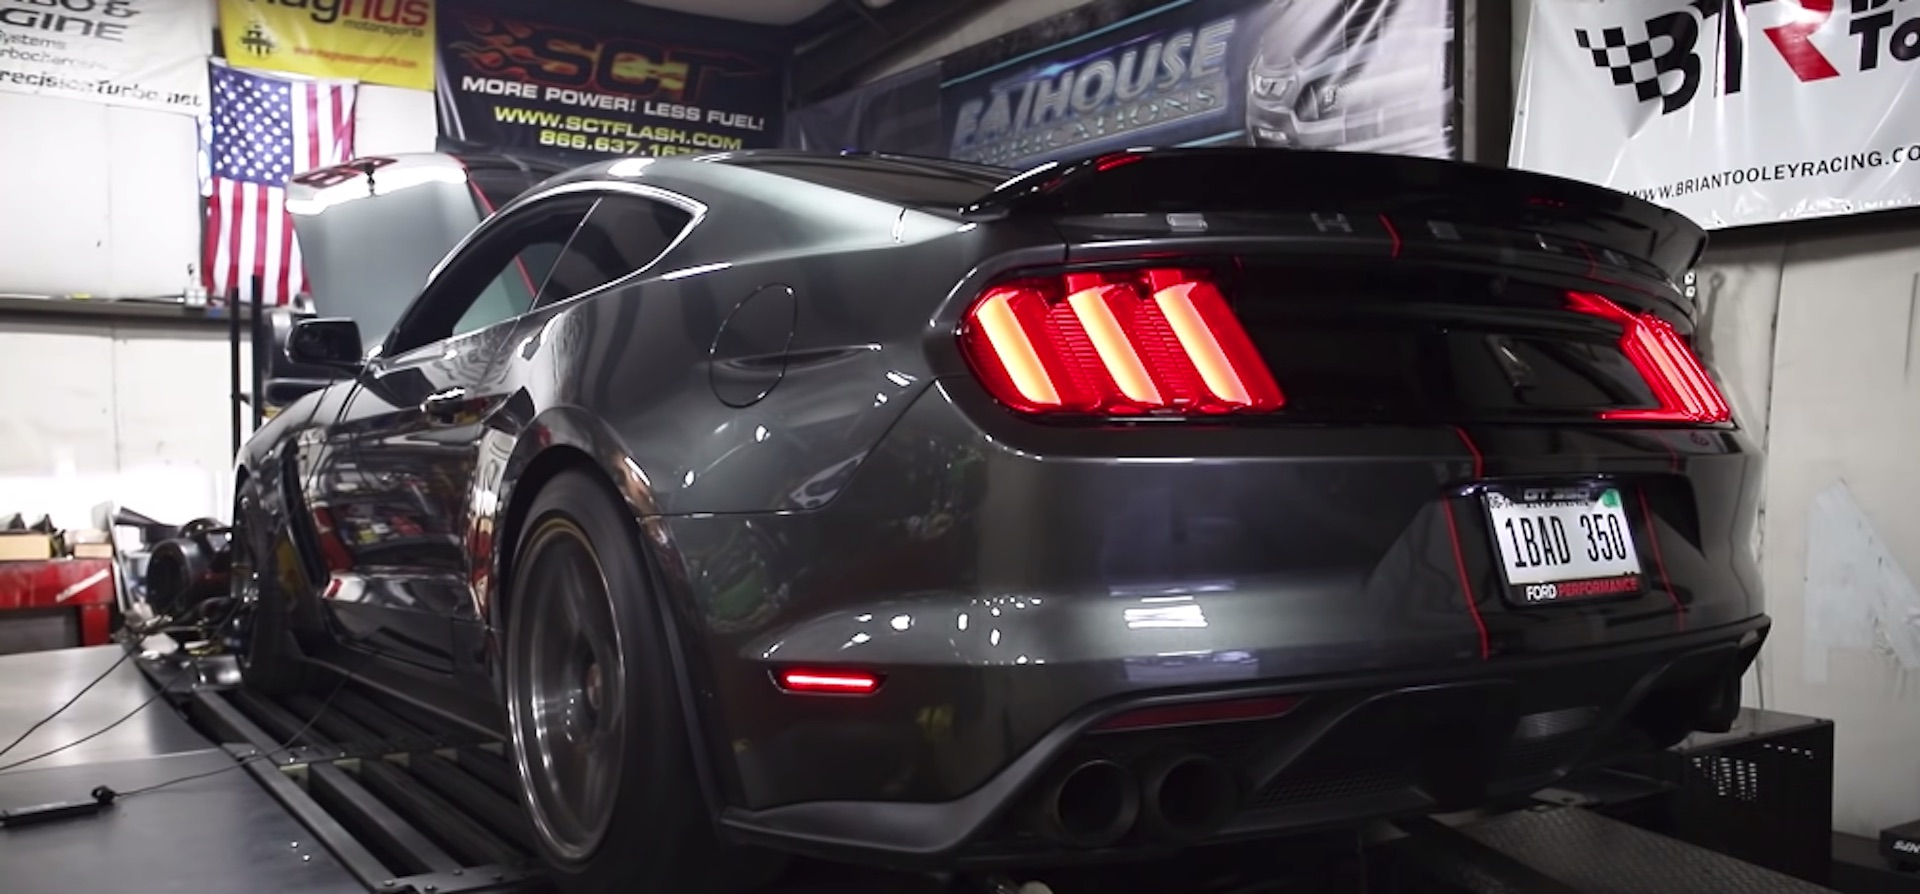 Twin-turbo Mustang Shelby GT350 with 1,348 whp makes the ears bleed